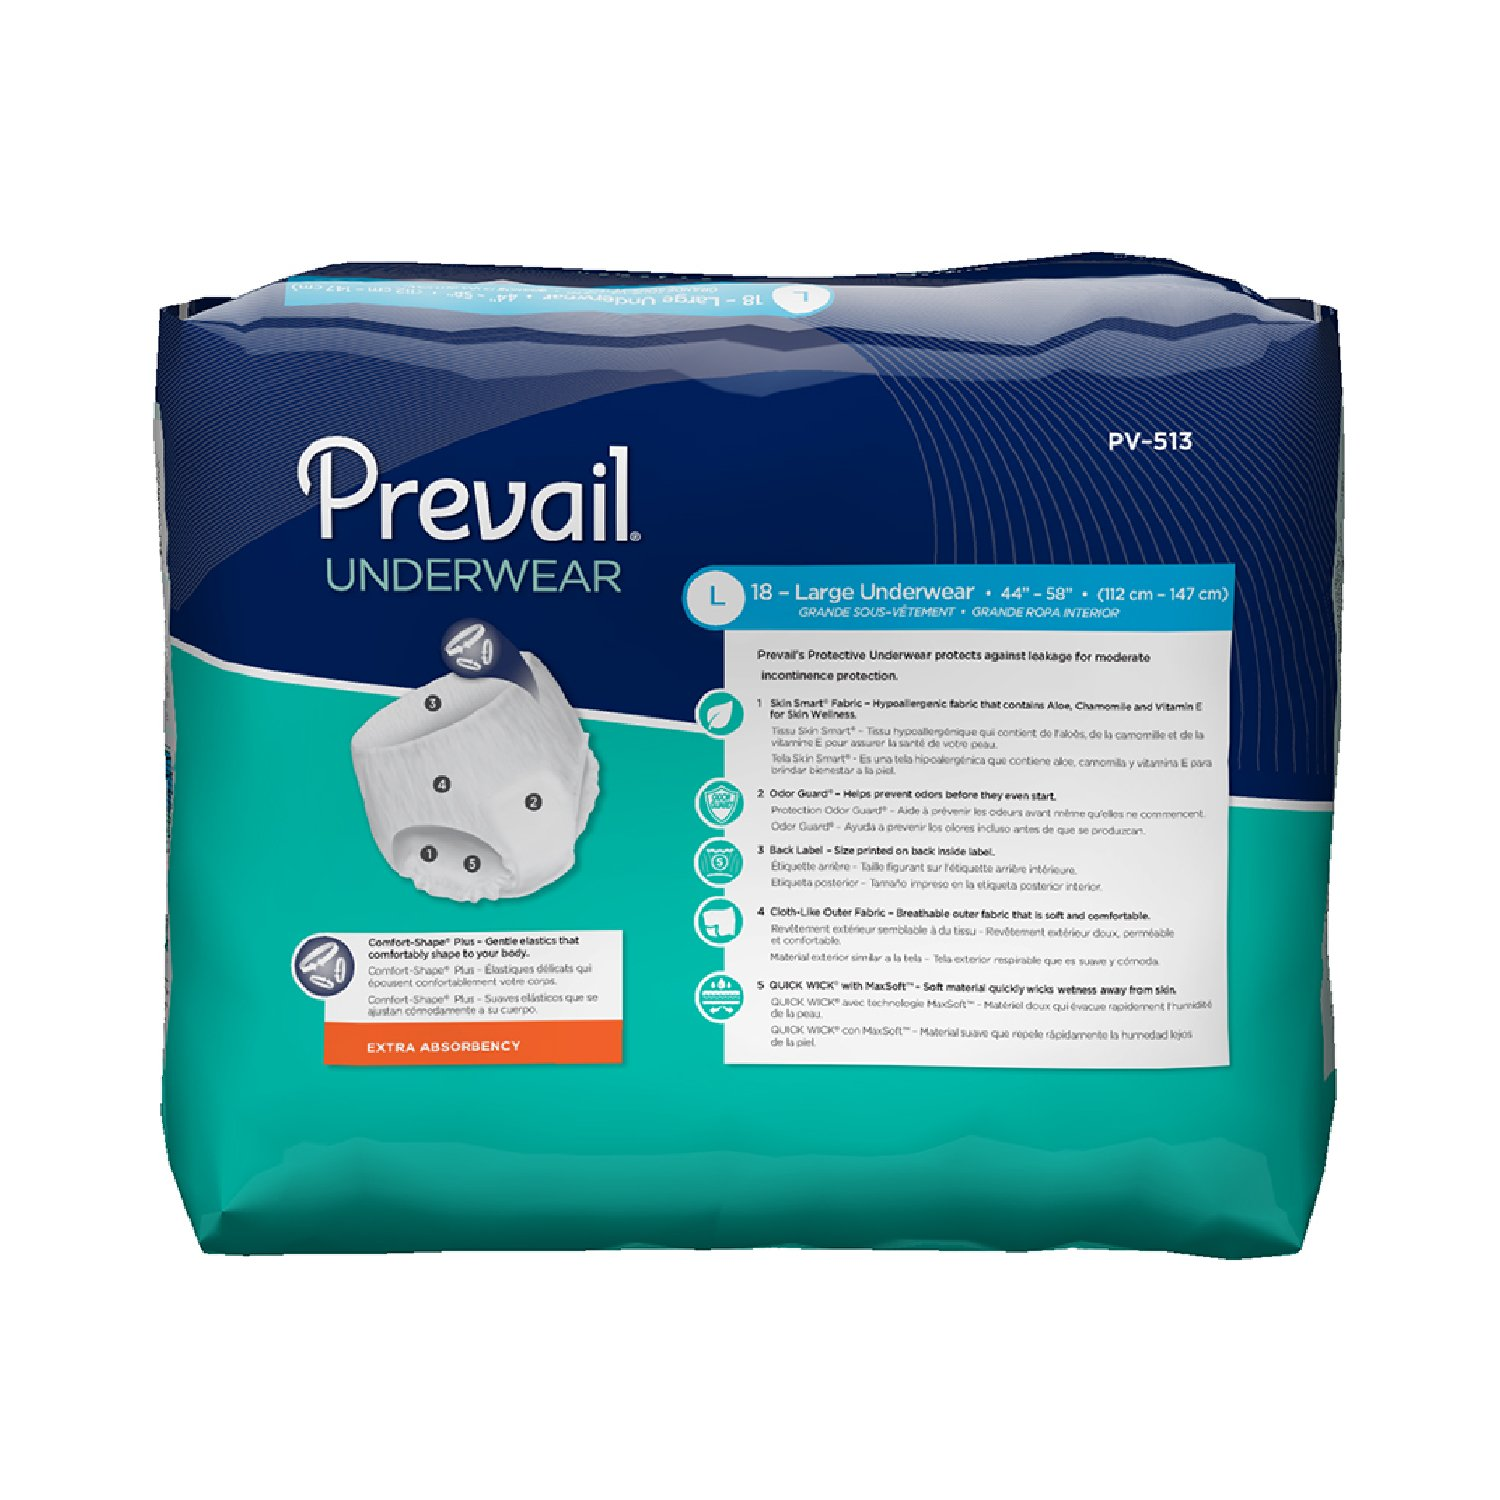 Amazon.com: Prevail Extra Absorbency Incontinence Underwear, Large, 18-Count (Pack of 4): Health & Personal Care